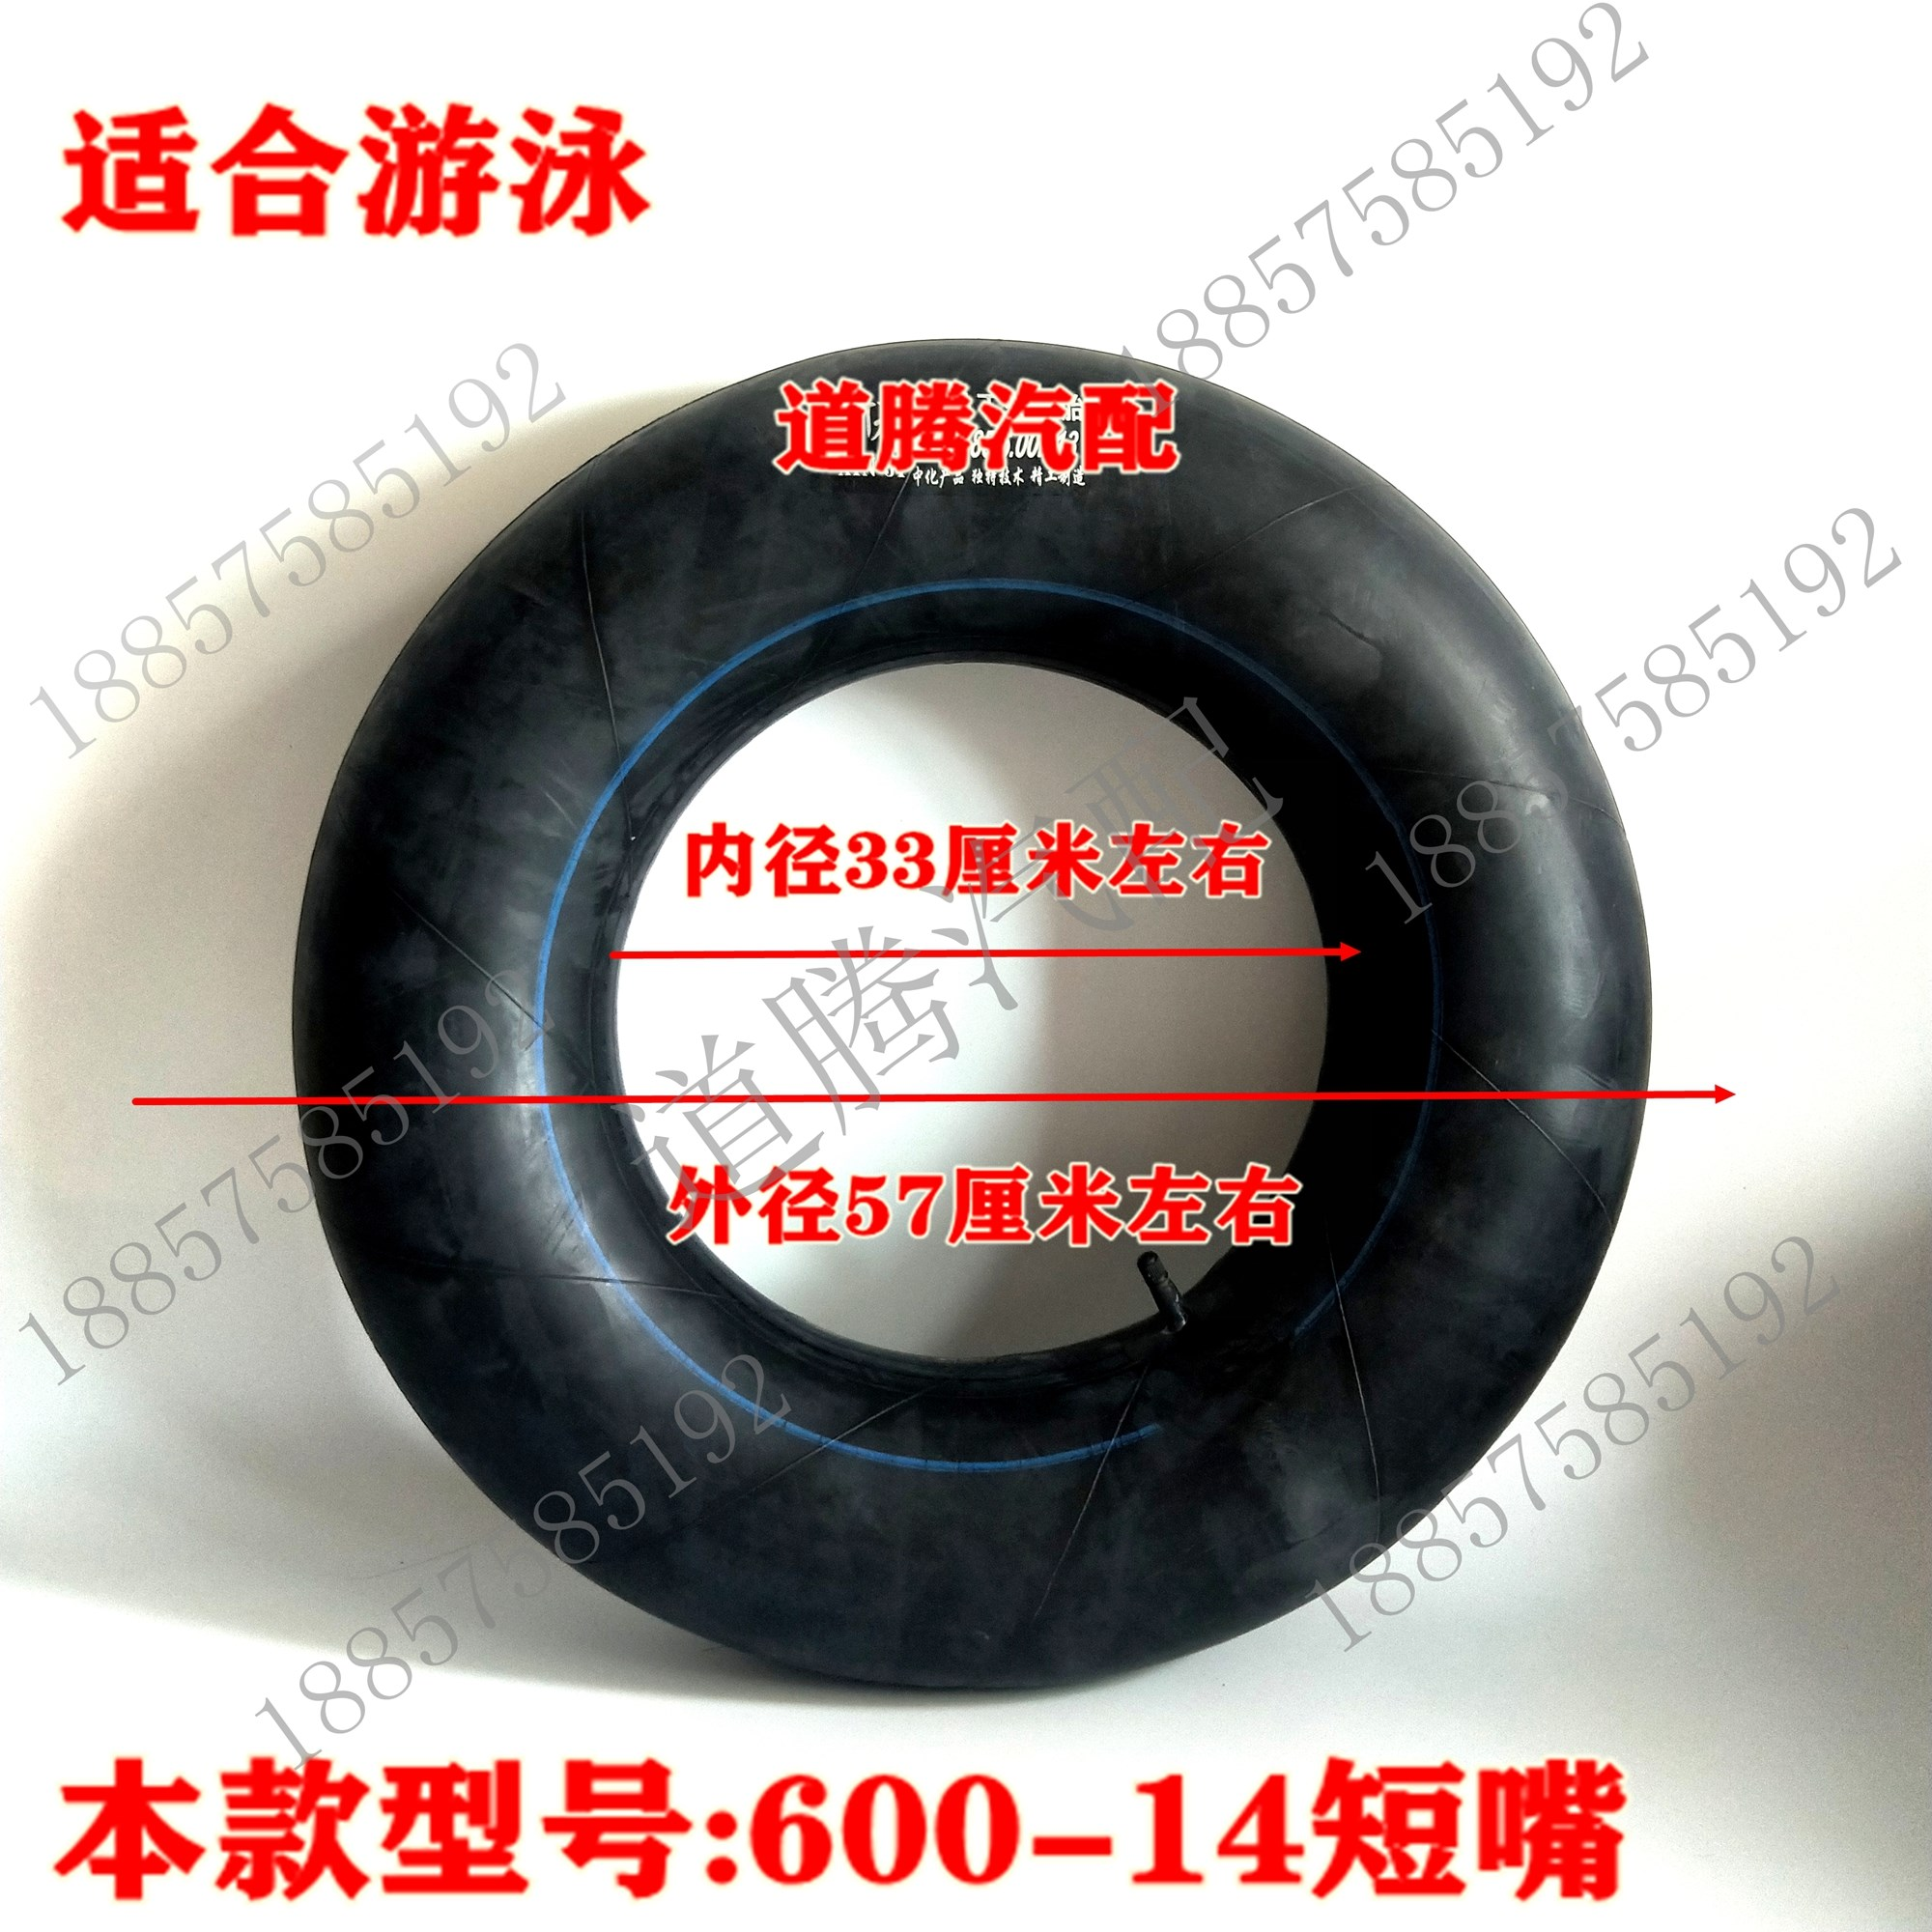 Car inner tube swimming ring childrens armpit armpit tube boat large buoyancy paddle bed inflatable large tire